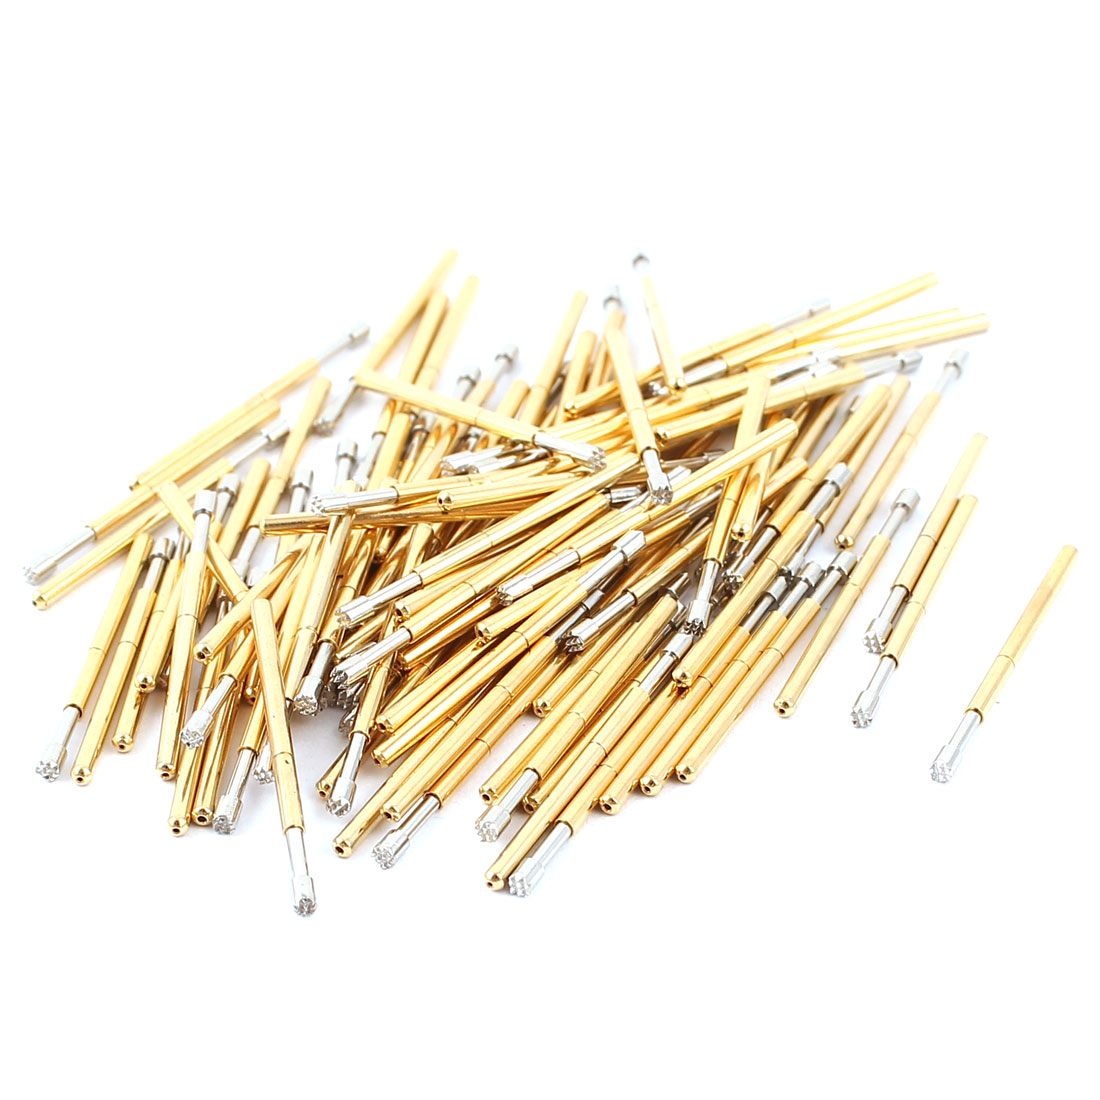 100 Pcs P160-H2 1.5mm 9-Point Crown Tip Spring Testing Probes Pin